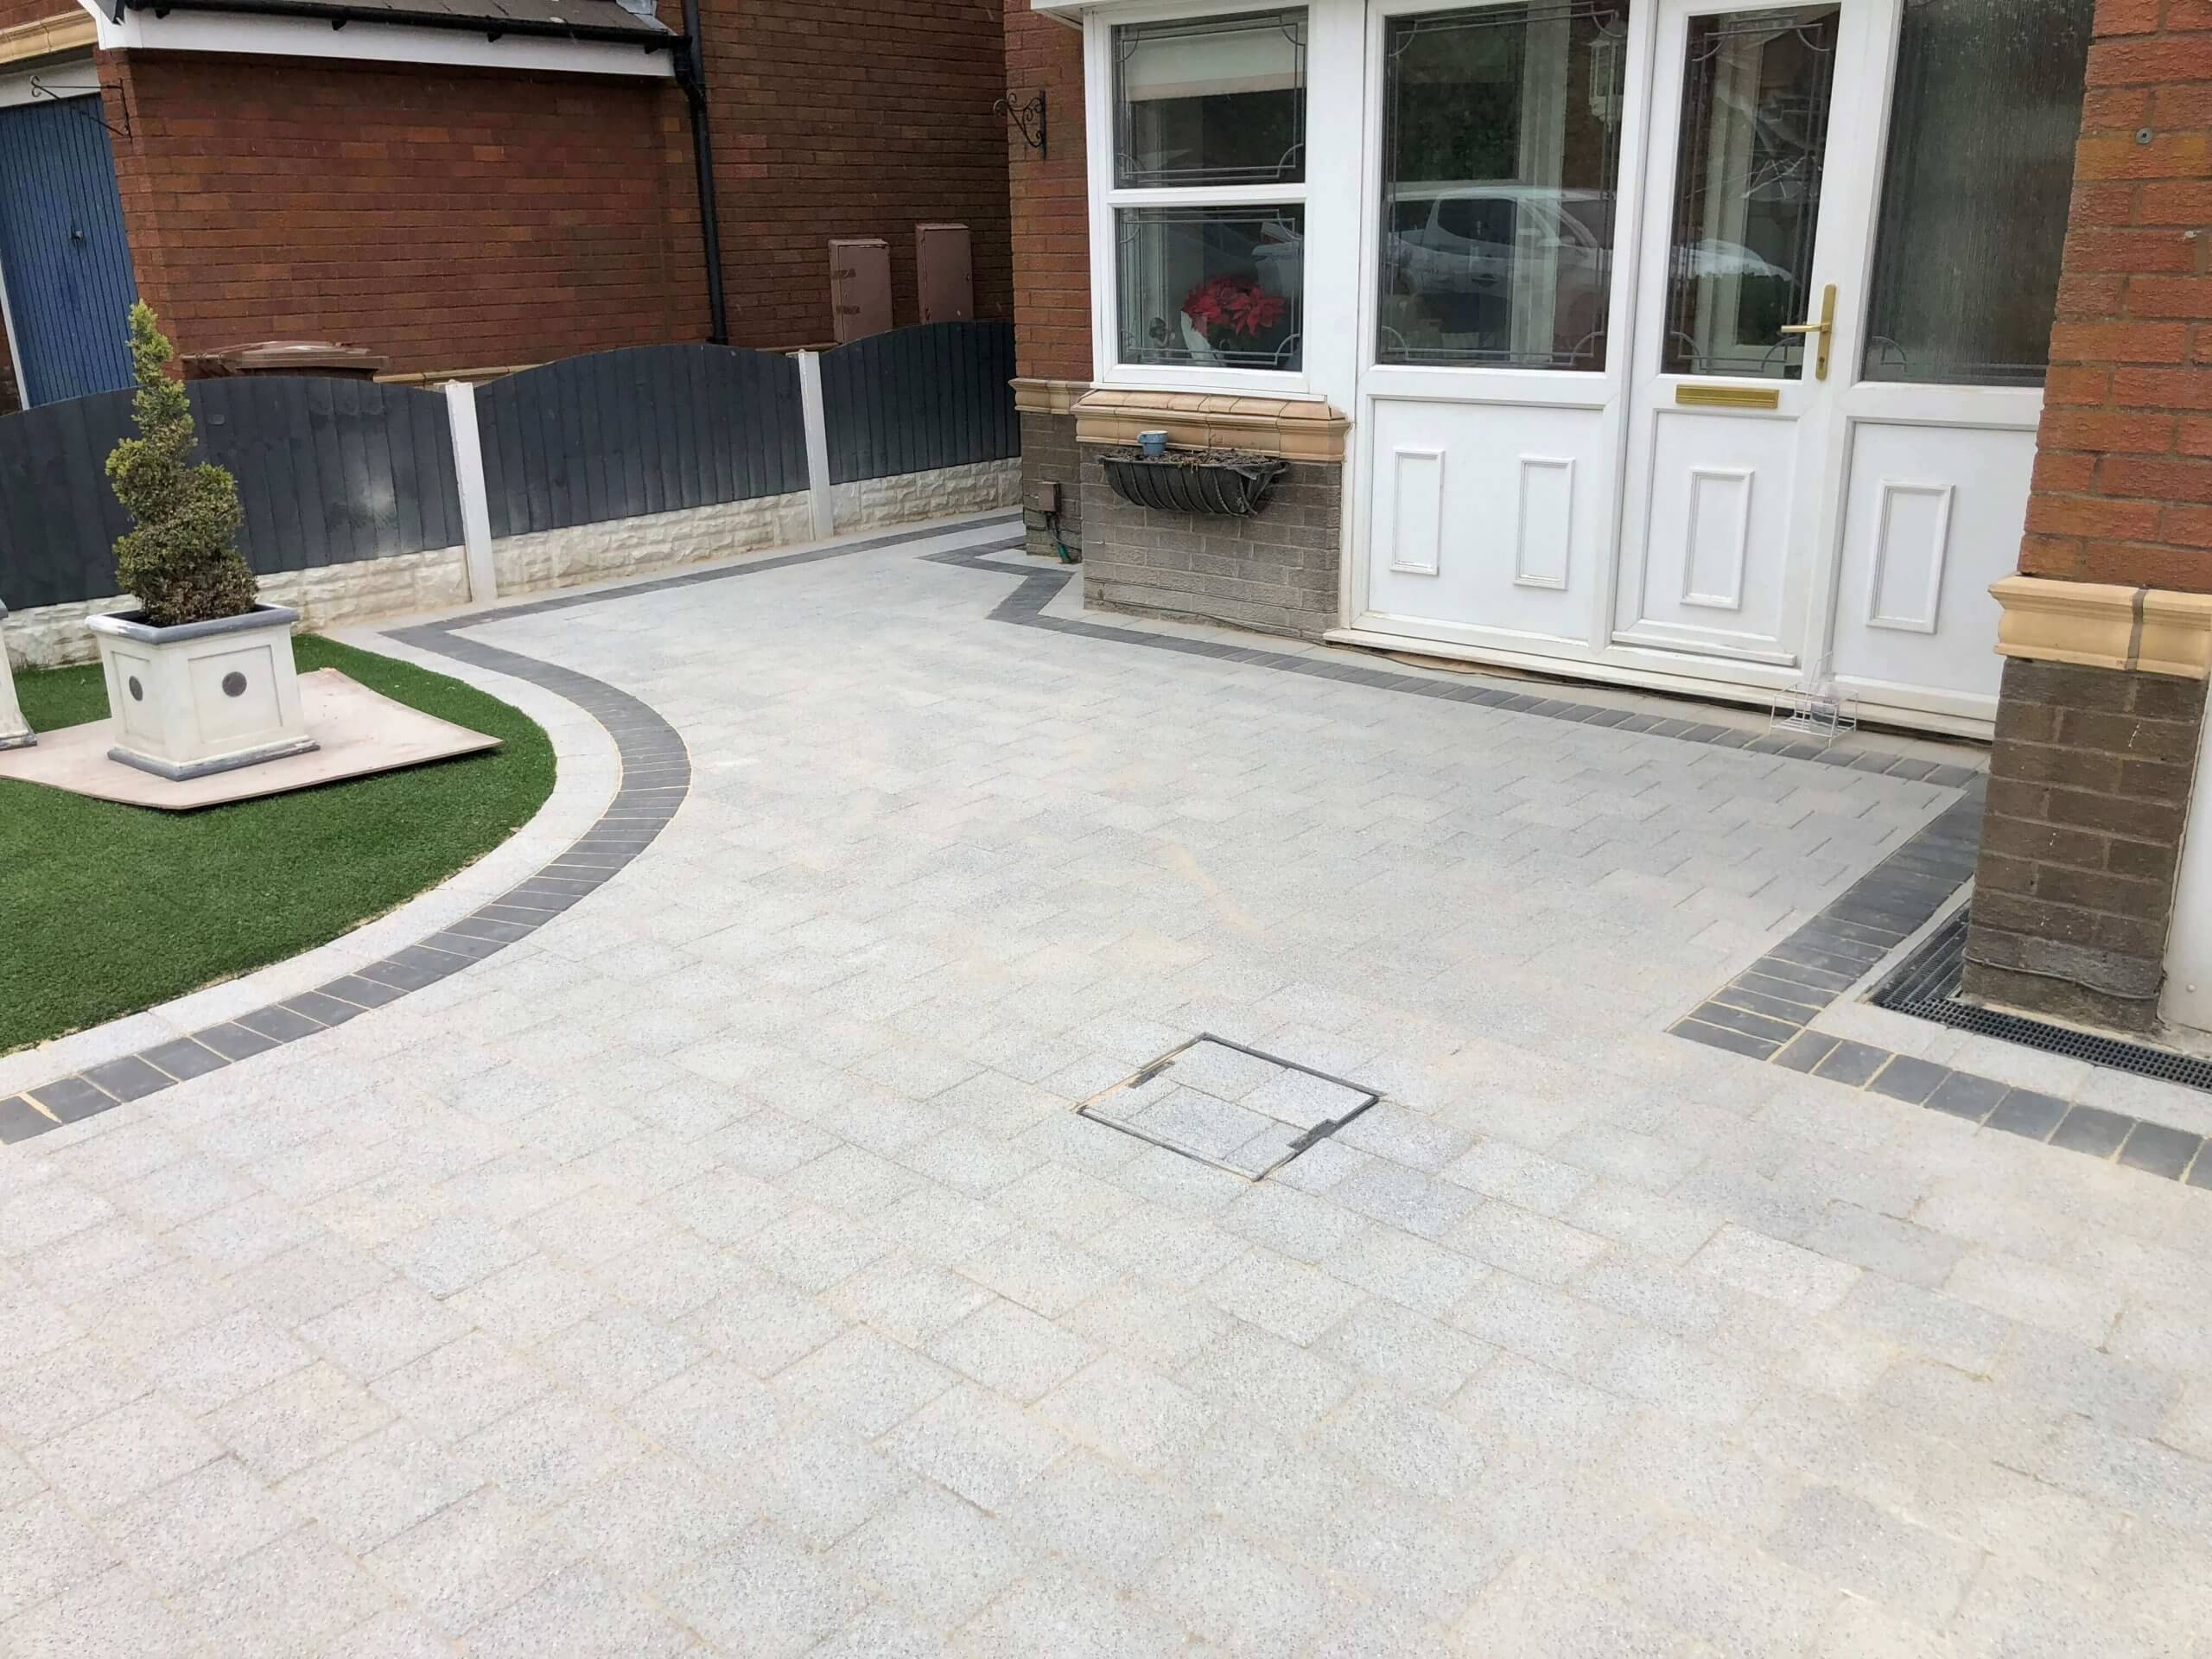 Front door view of Block Paving Driveway in Sienna Silver, Lancaster, Lancashire